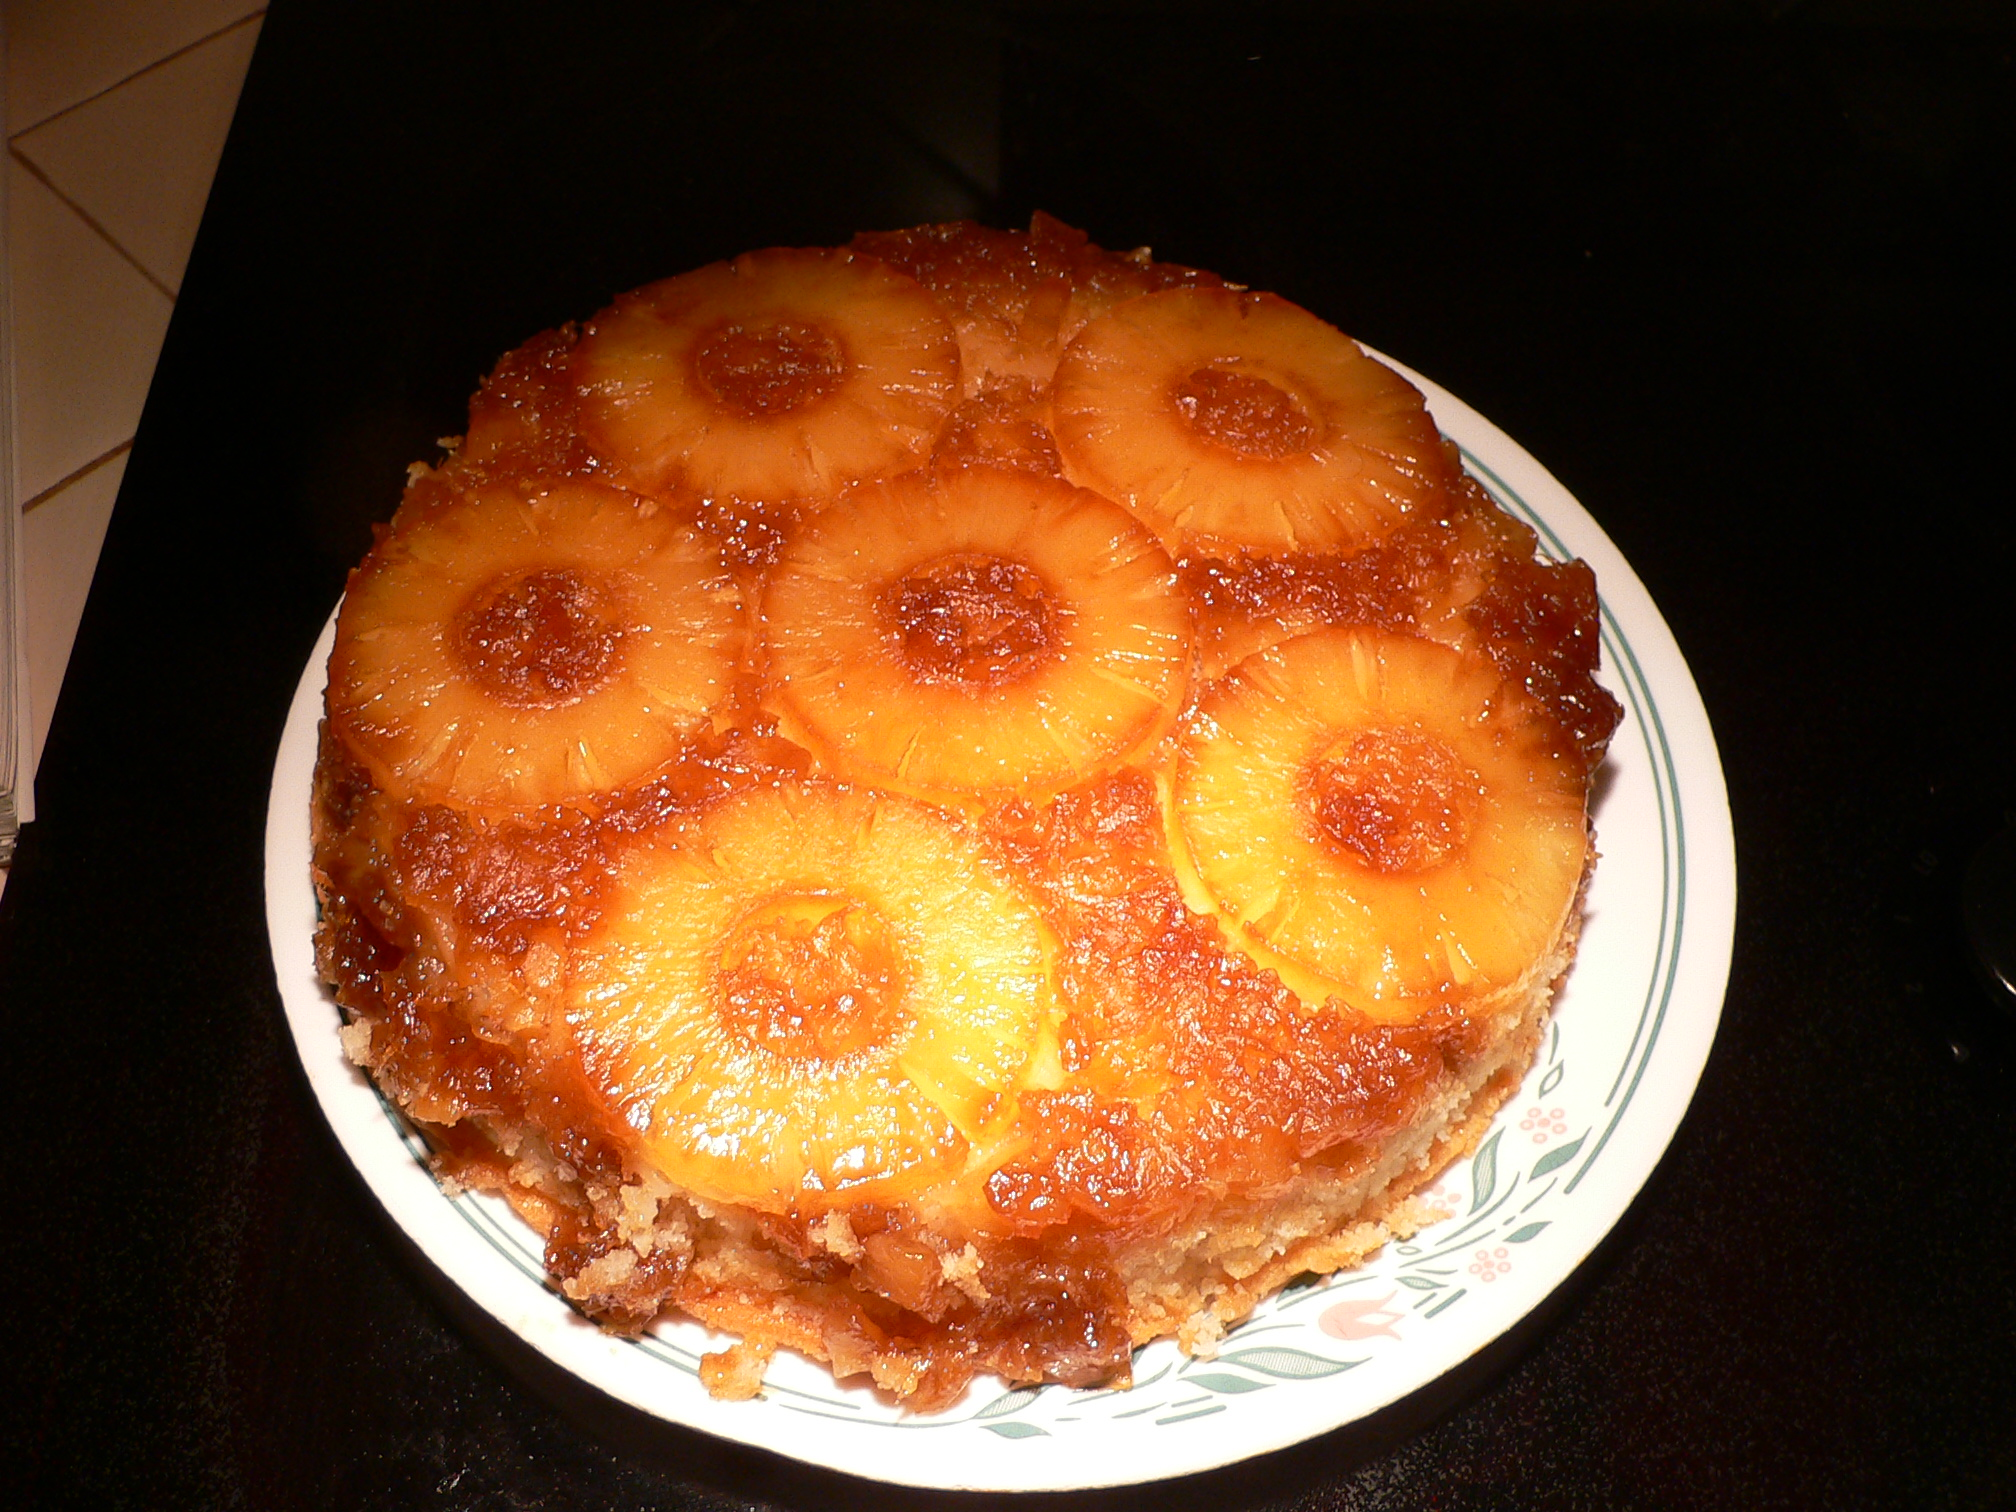 Description Pineapple upsidedown cake 9.jpg